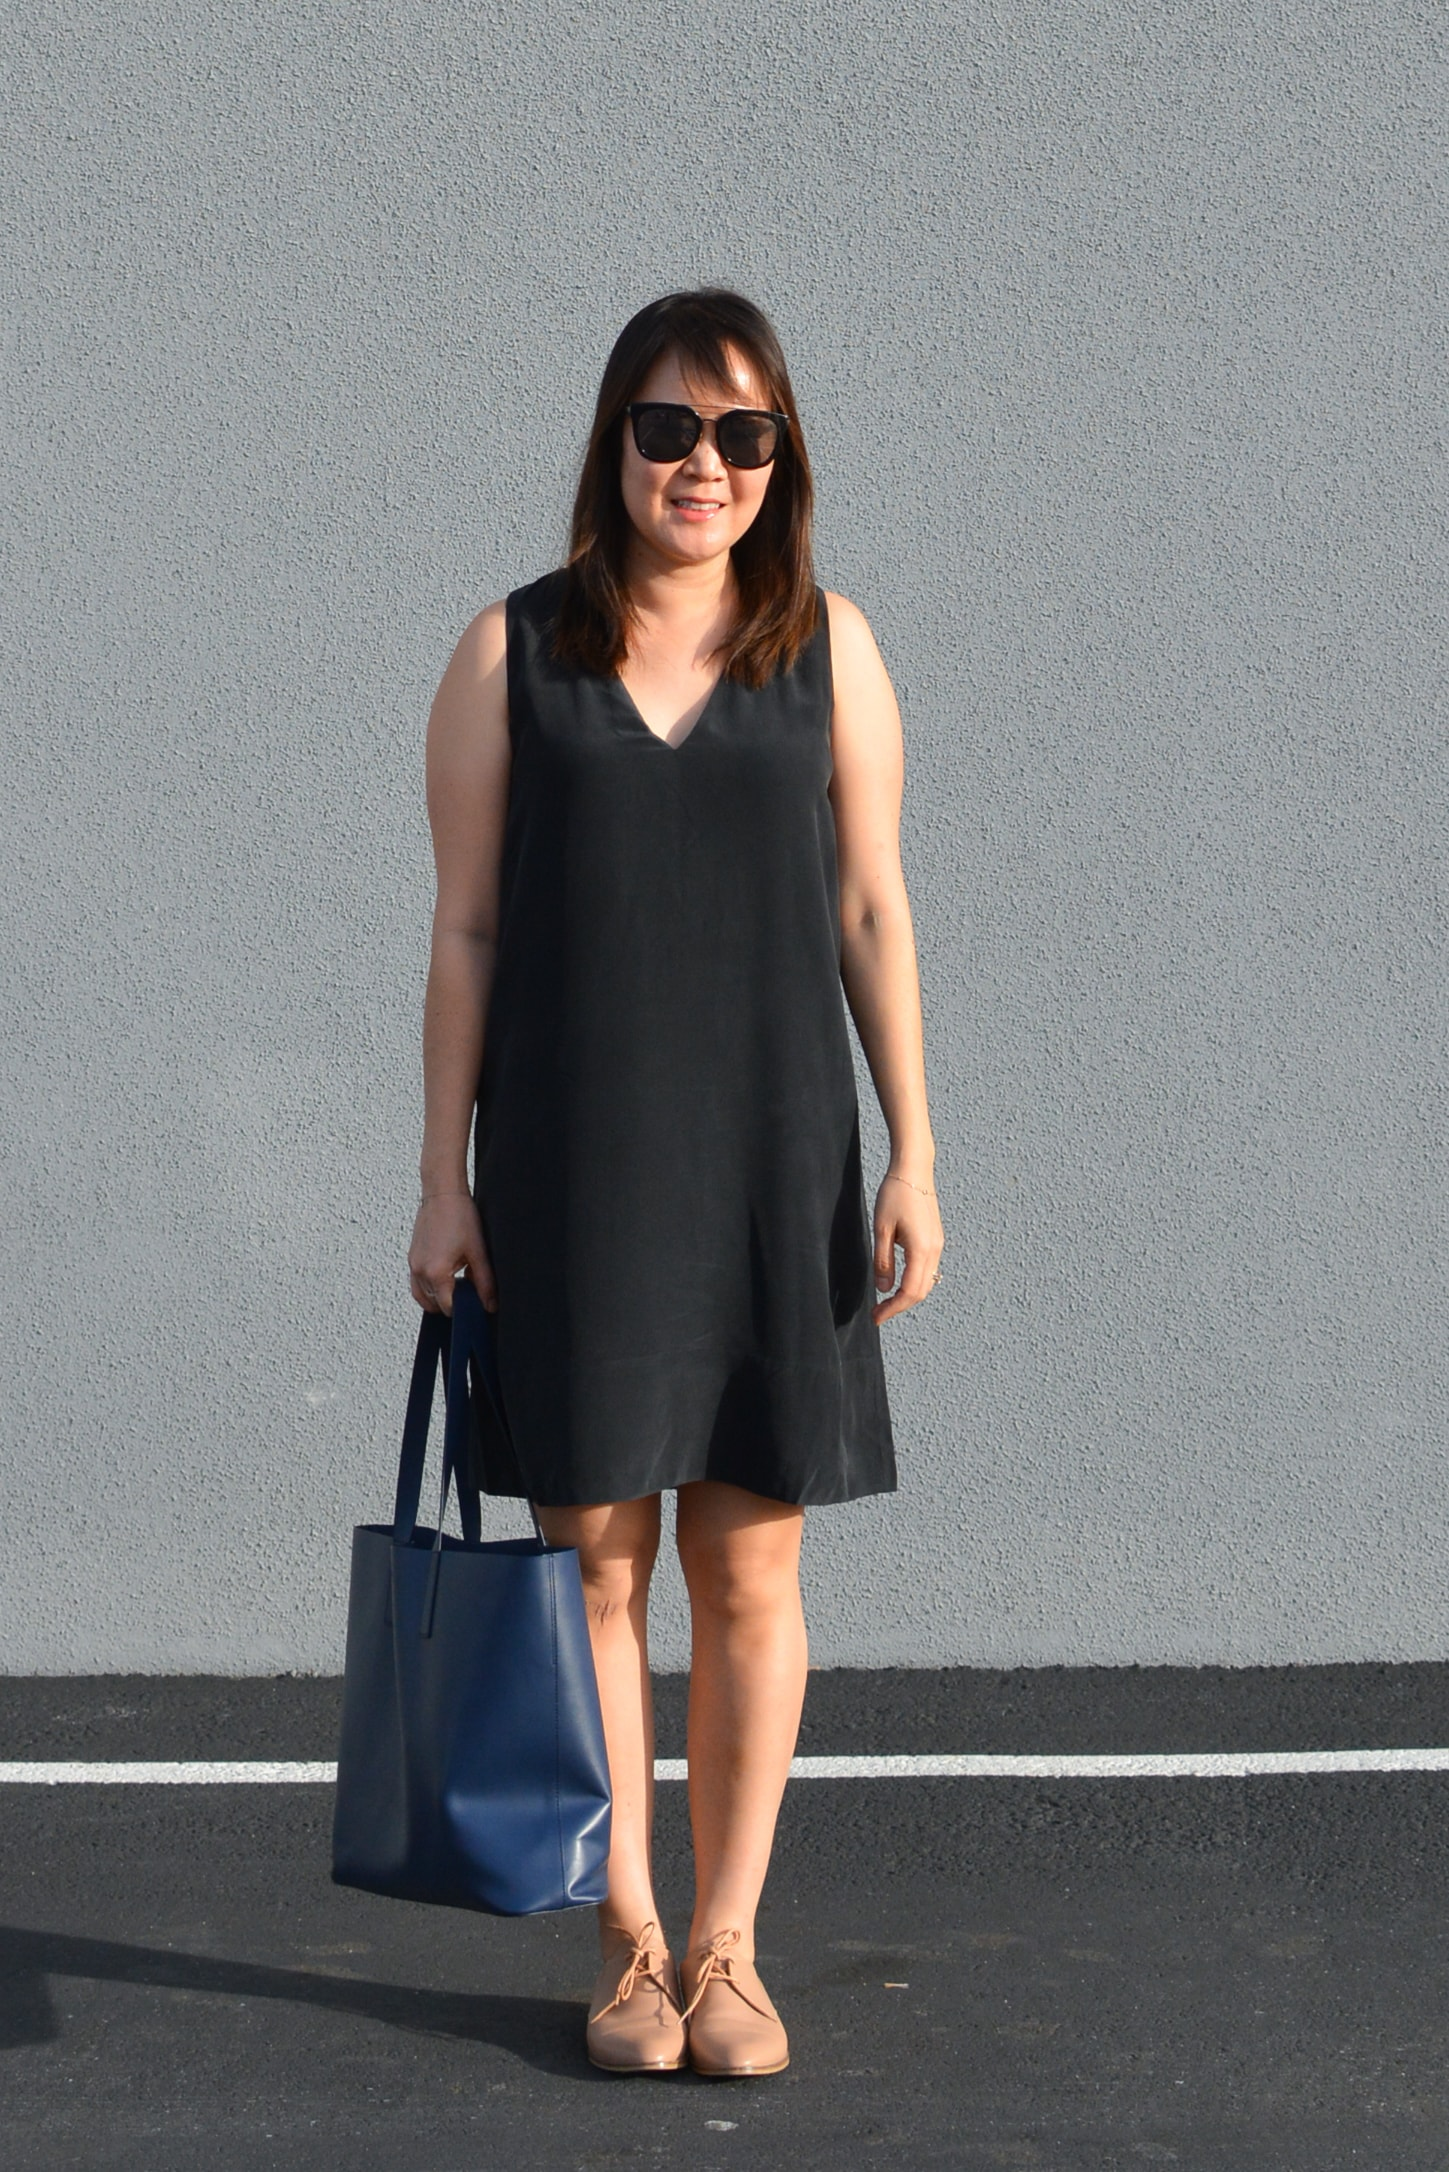 Everlane Review The Double-Lined V-Neck Silk Dress (1 of 3)-min.jpg